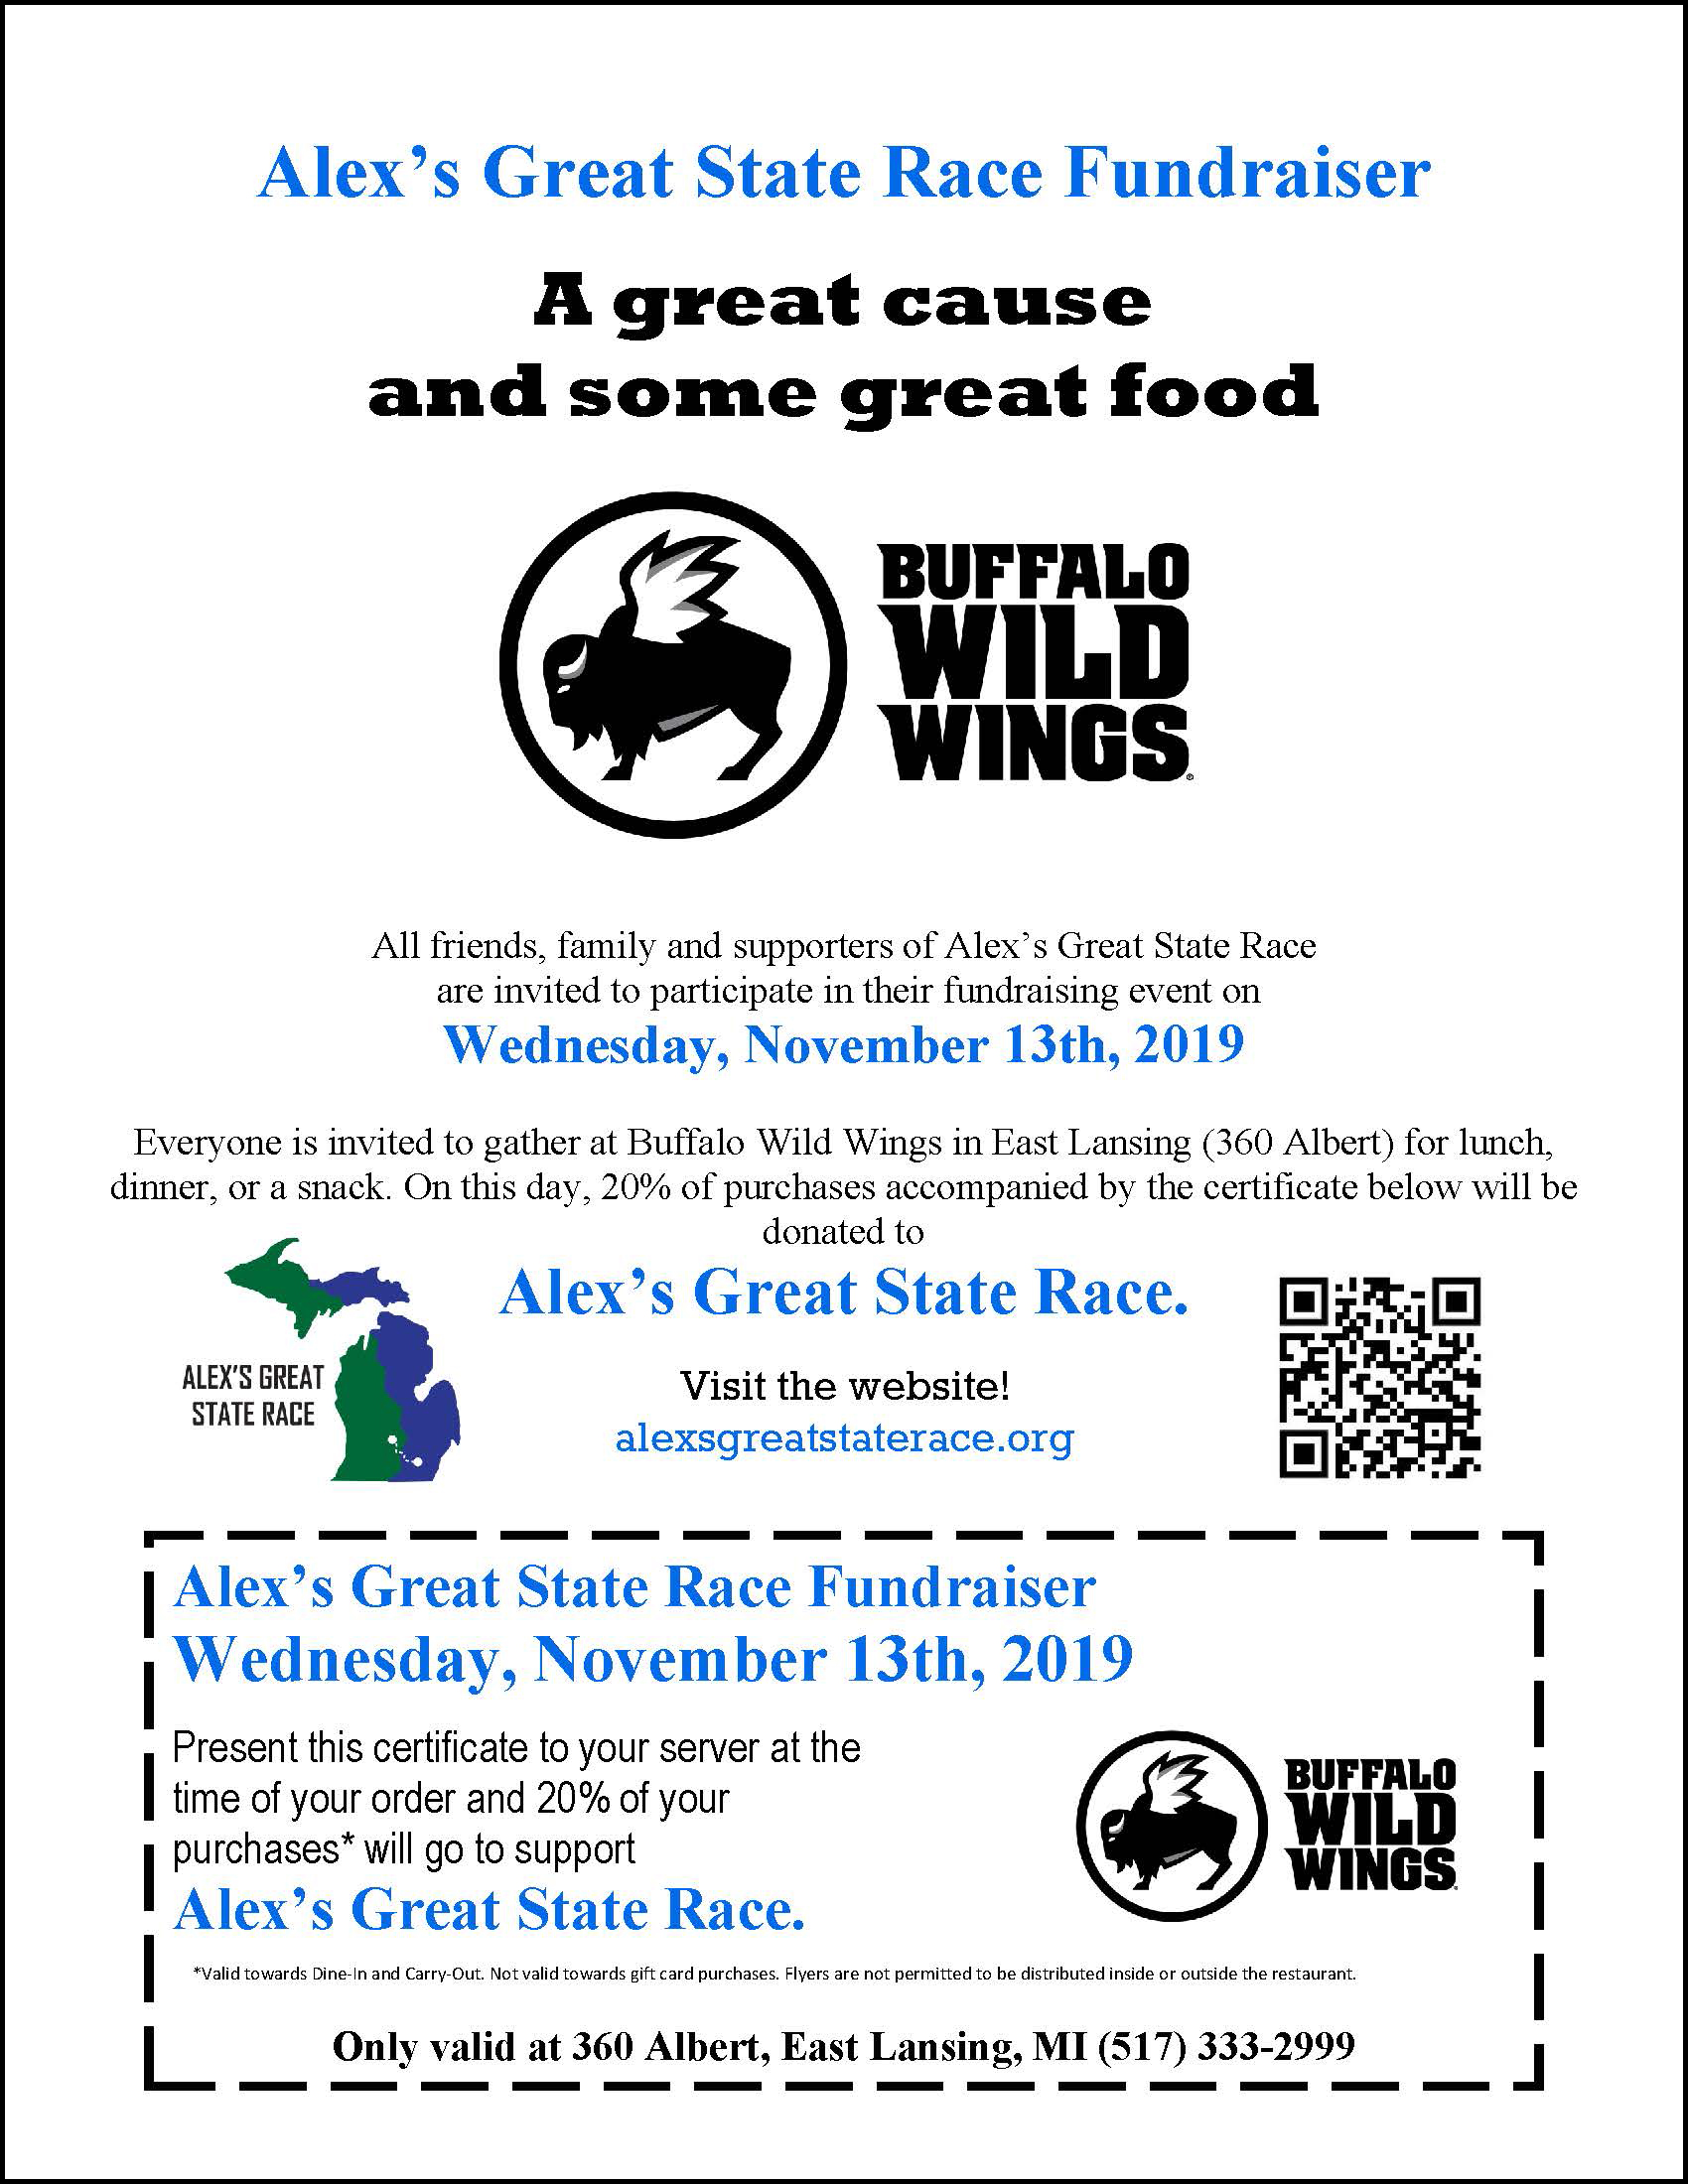 Buffalo Wild Wings fundraiser in East Lansing on November 13, 2019